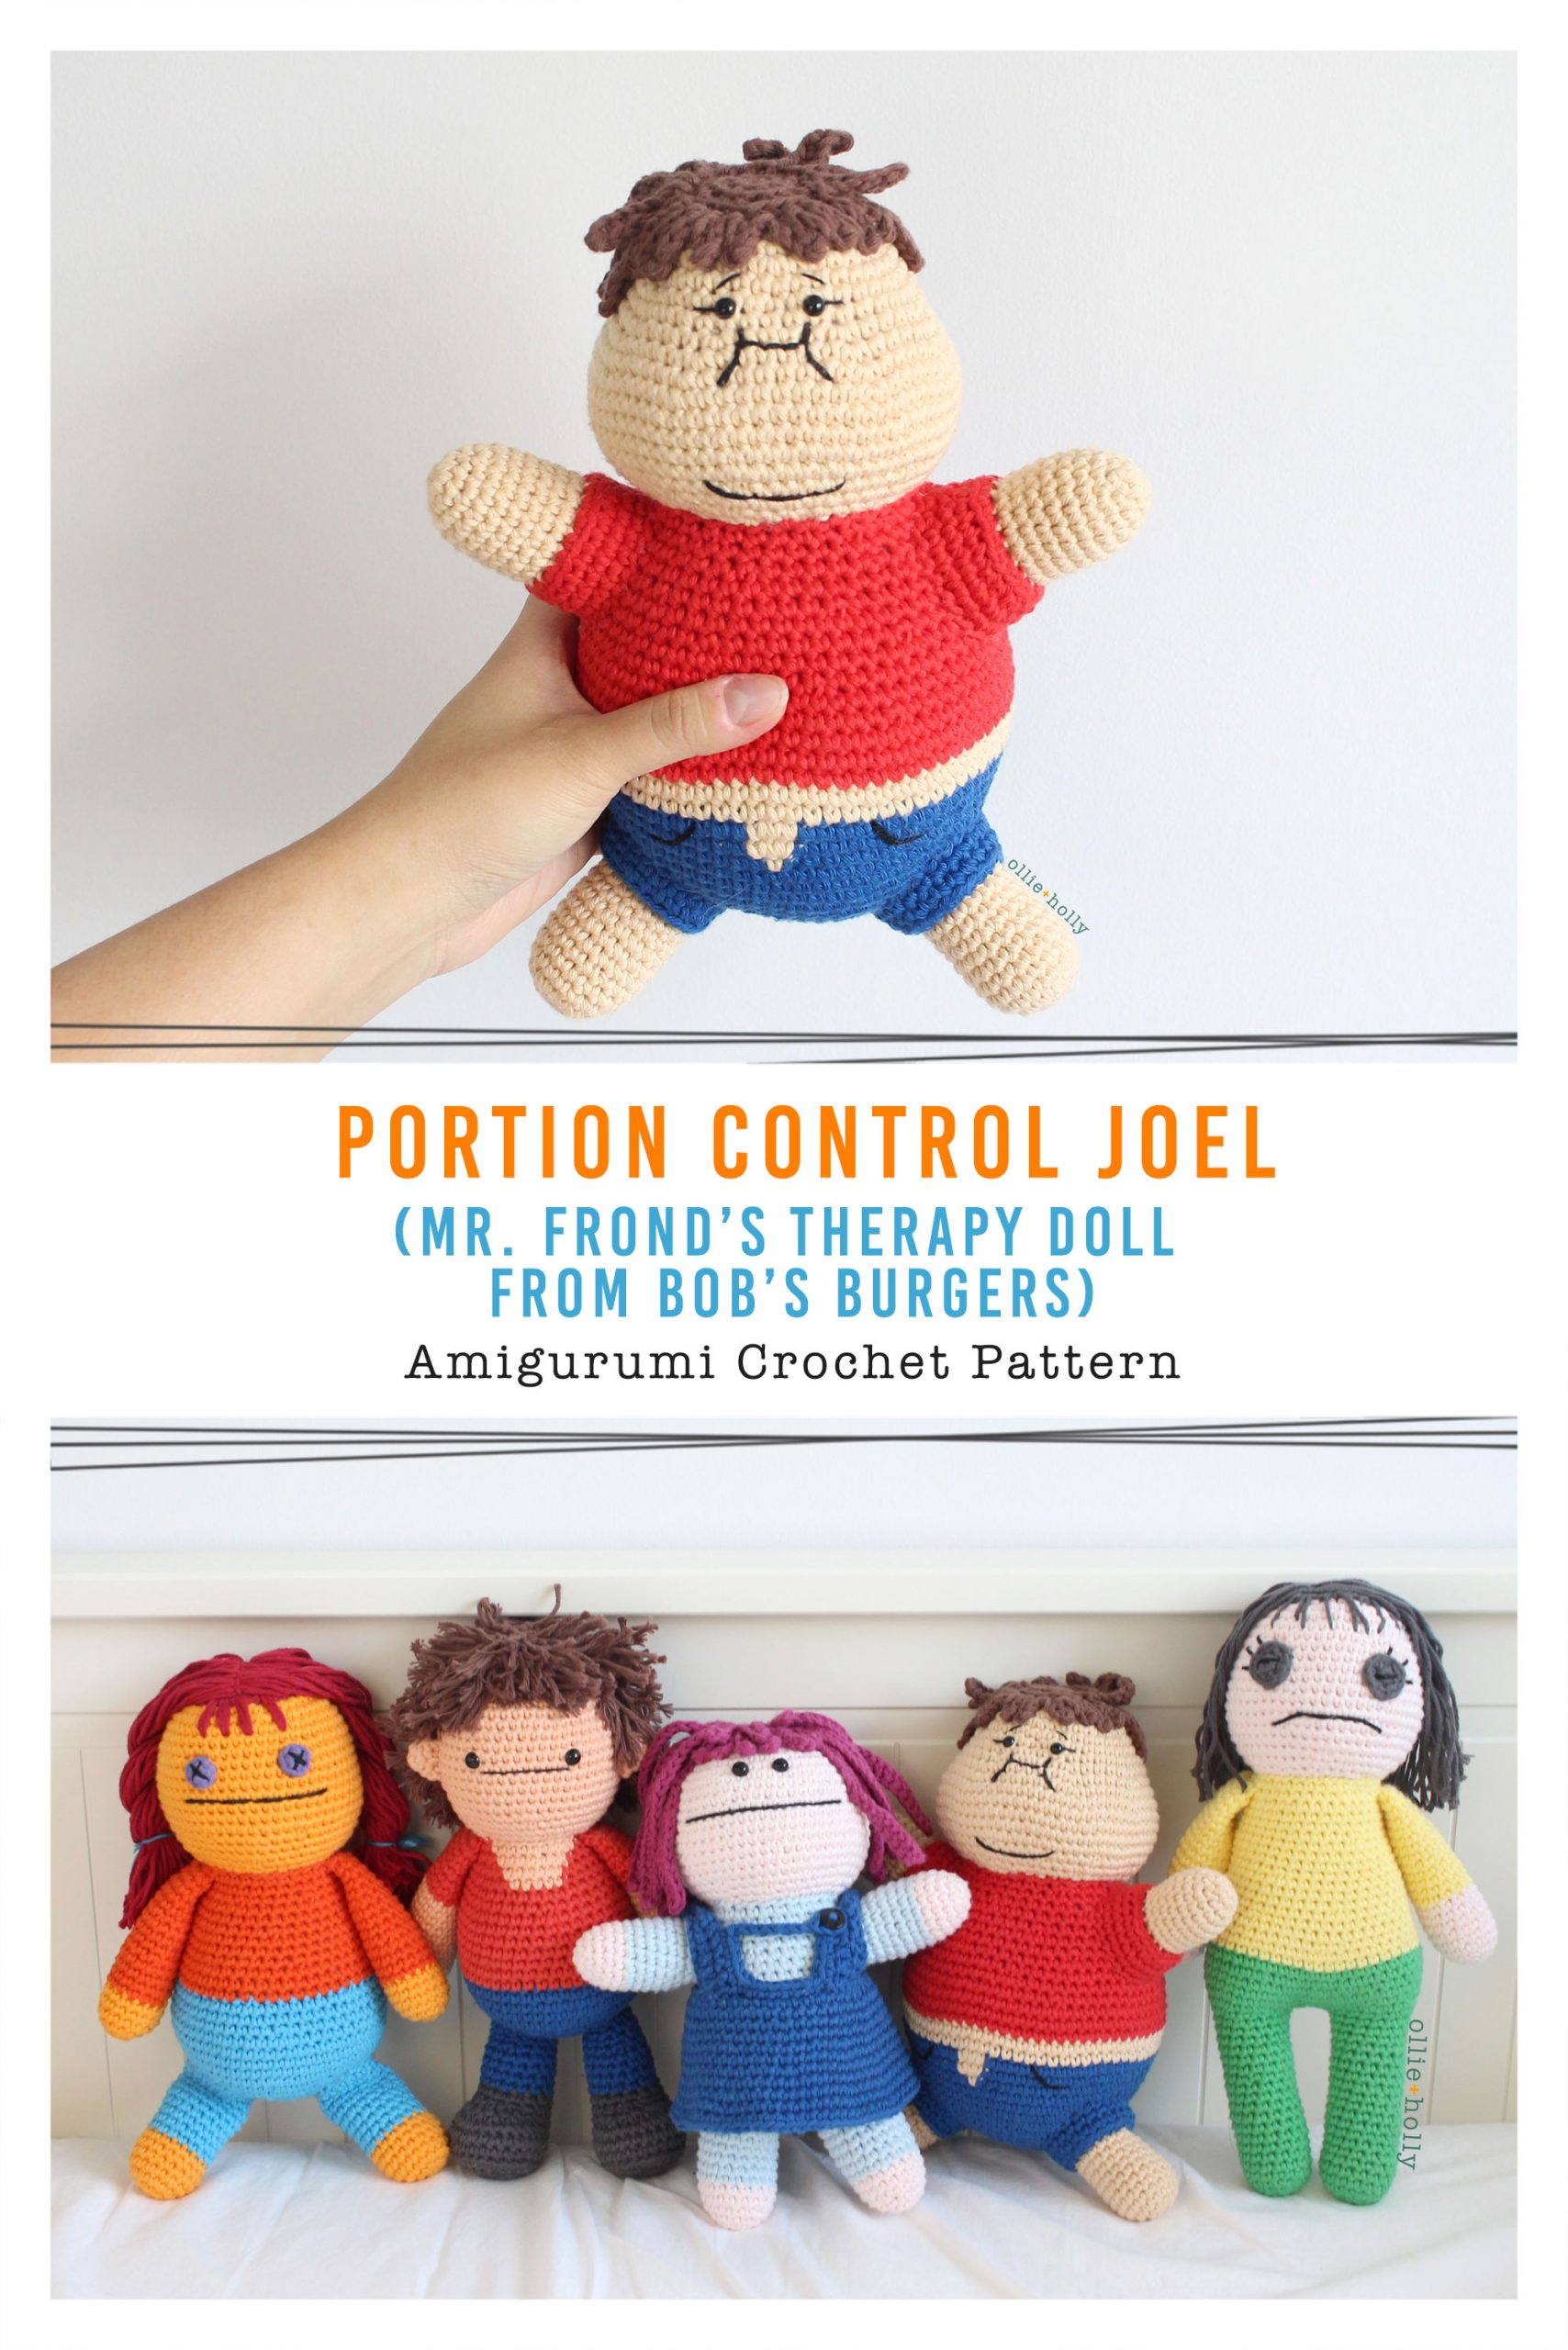 Portion Control Joel (Mr. Frond's Therapy Doll from Bob's Burgers) Amigurumi Crochet Pattern